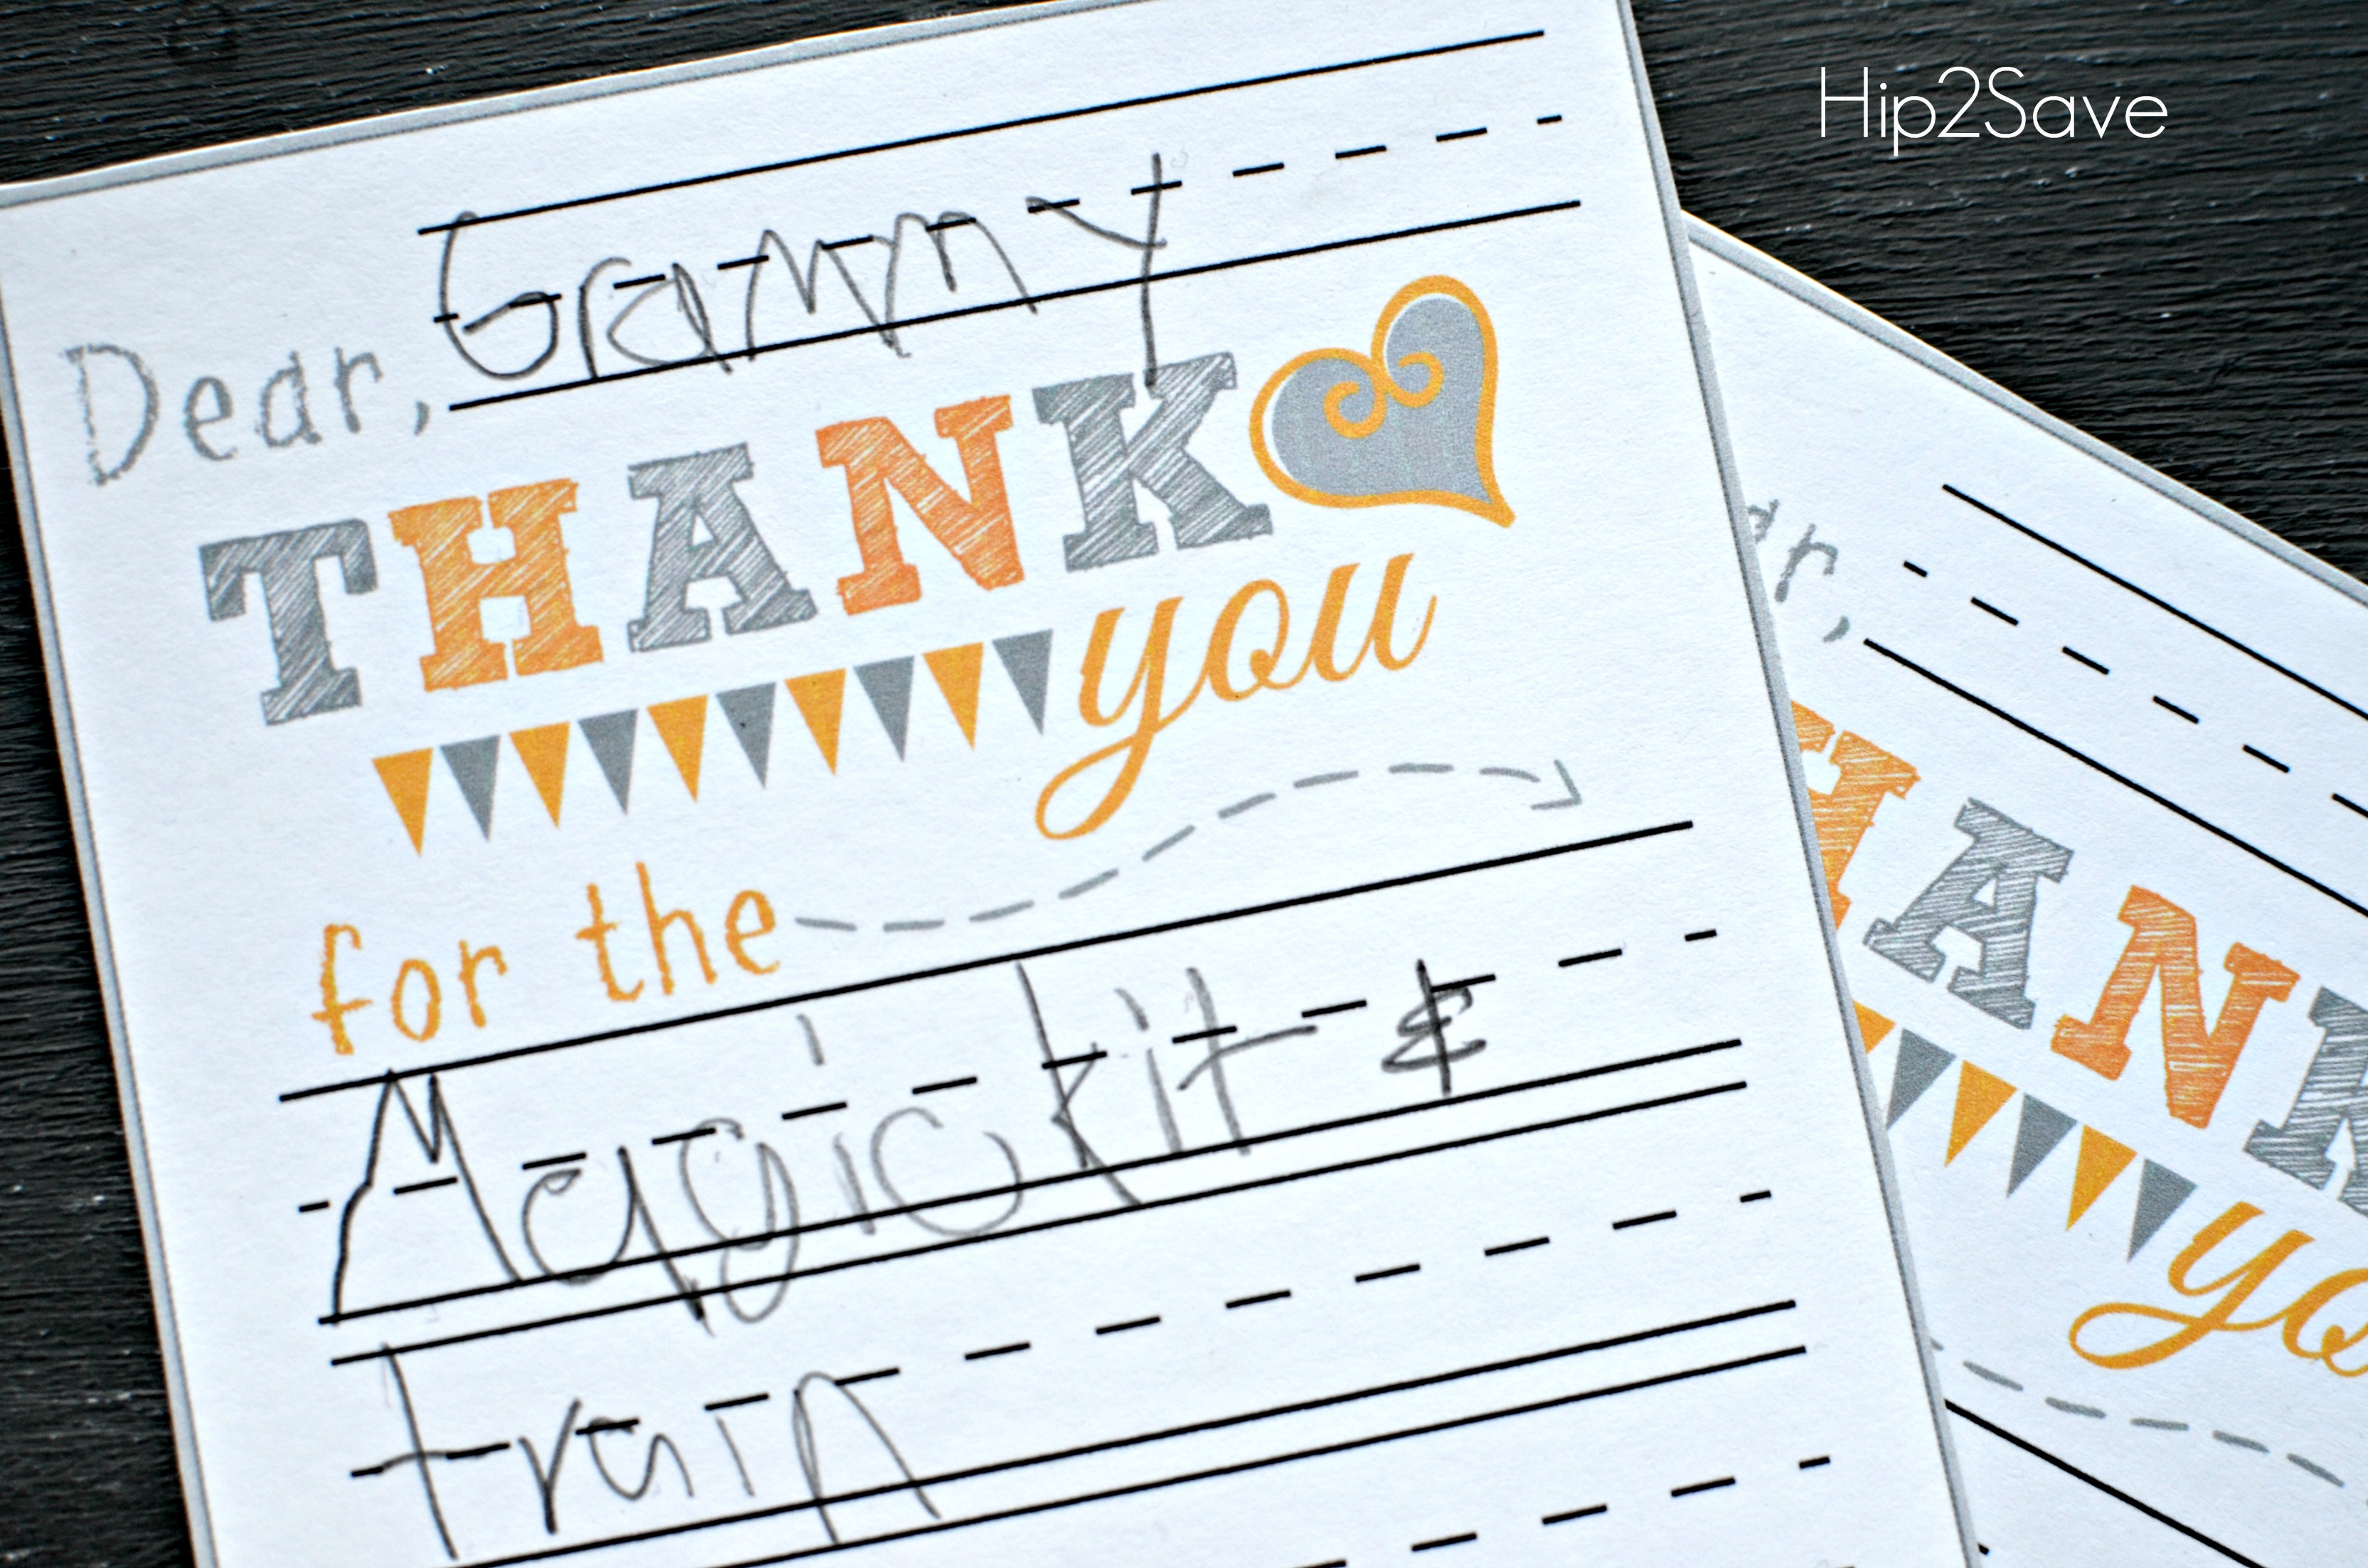 It's just a picture of Simplicity Printable Thank You Cards for Kids